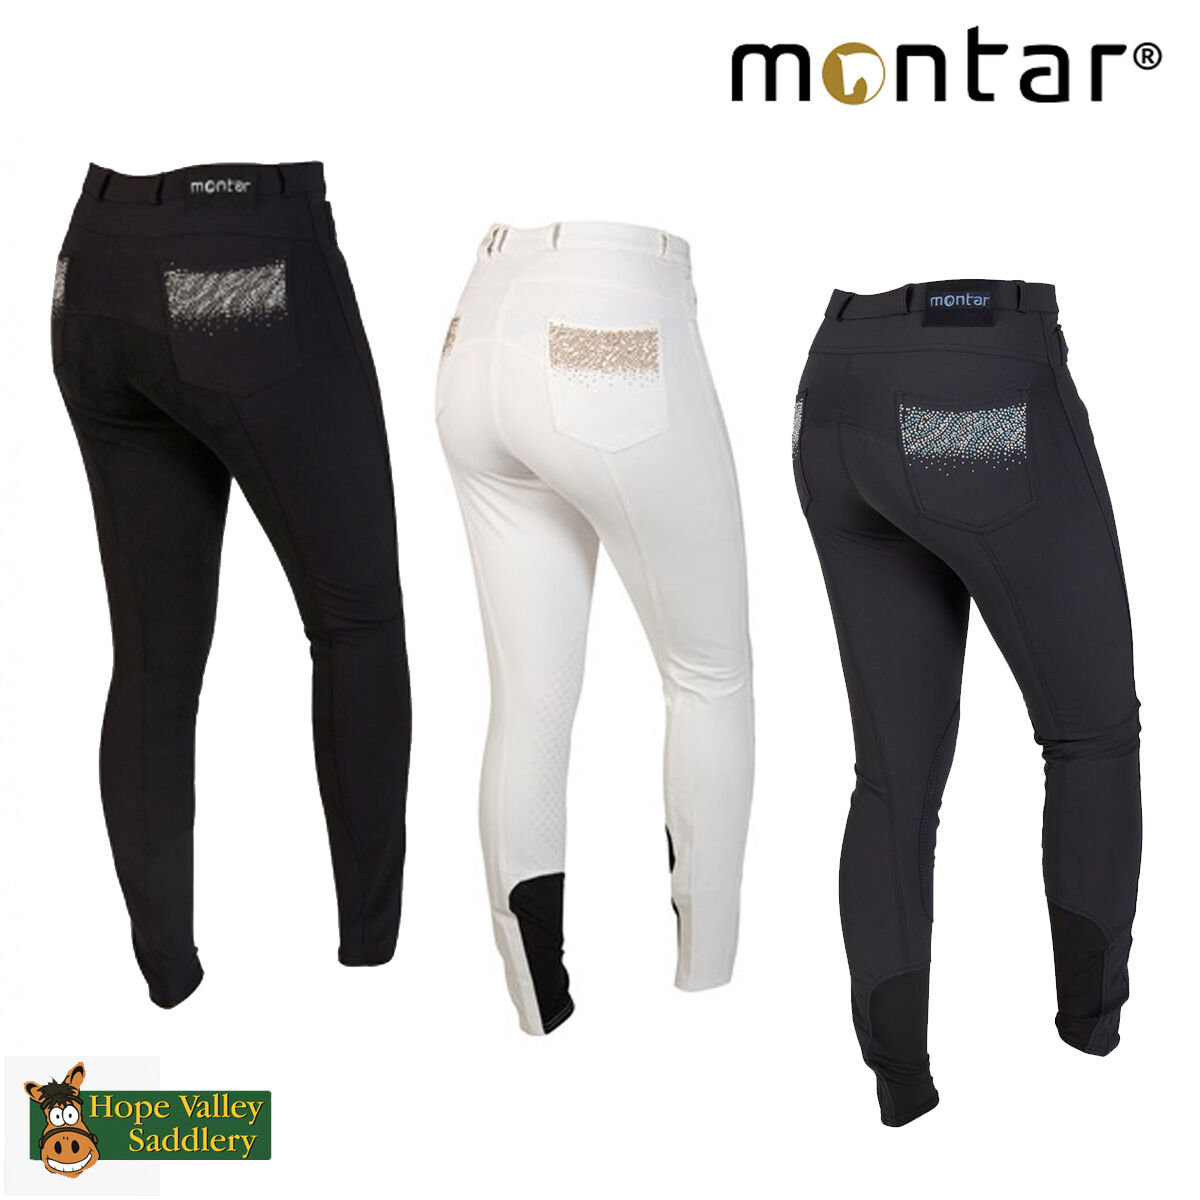 Montar Studs Kids Full Seat Breeches (2089) - Sale BNWT